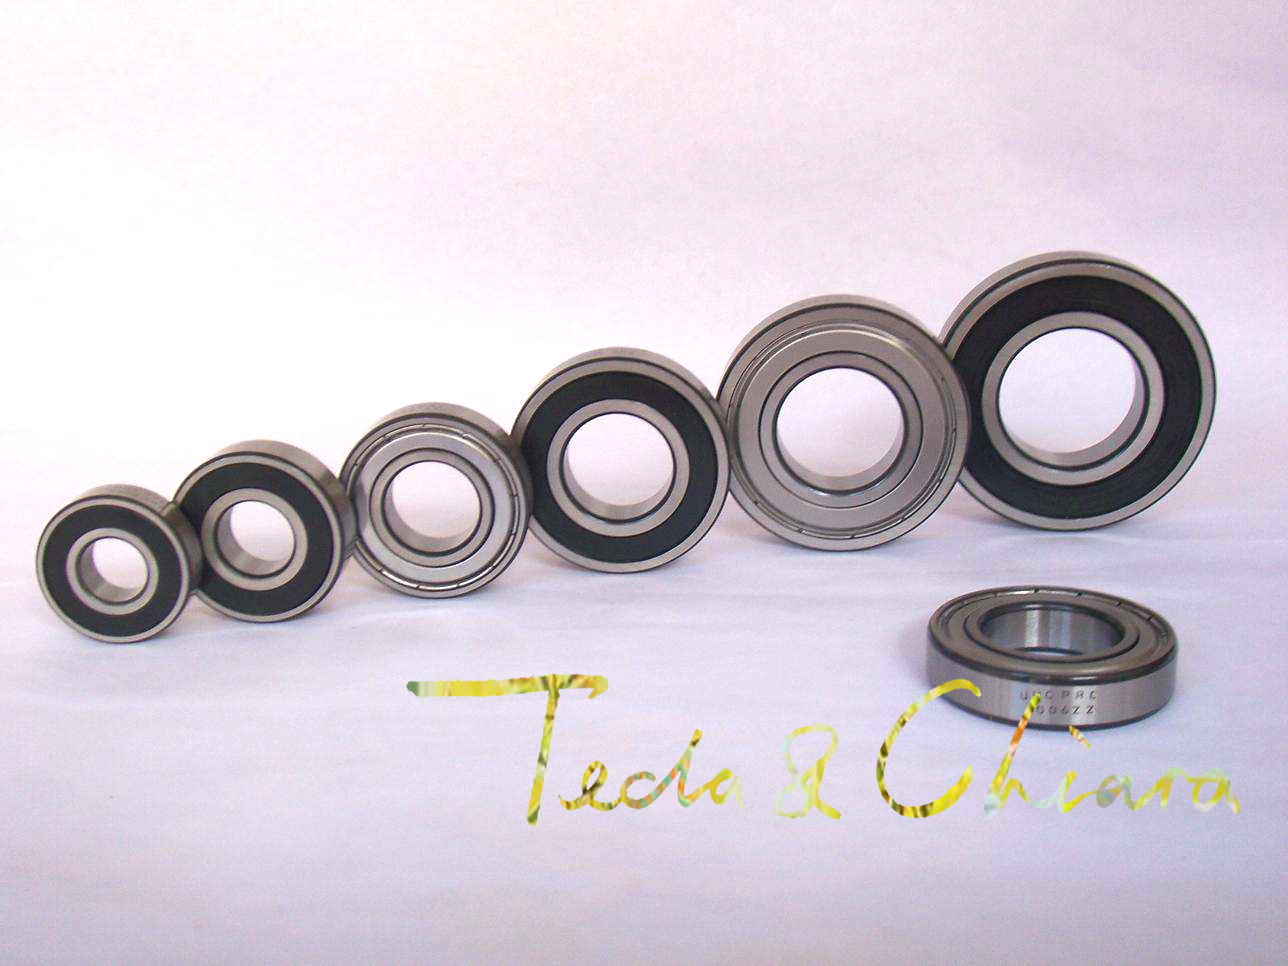 MR148 MR148ZZ MR148RS MR148-2Z MR148Z MR148-2RS ZZ RS RZ 2RZ L-1480ZZ Deep Groove Ball Bearings 8 x 14 x 4mm High Quality mr148zz bearing abec 1 10pcs 8 14 4 mm miniature mr148 2z ball bearings mr148 zz l 1480zz mr148z